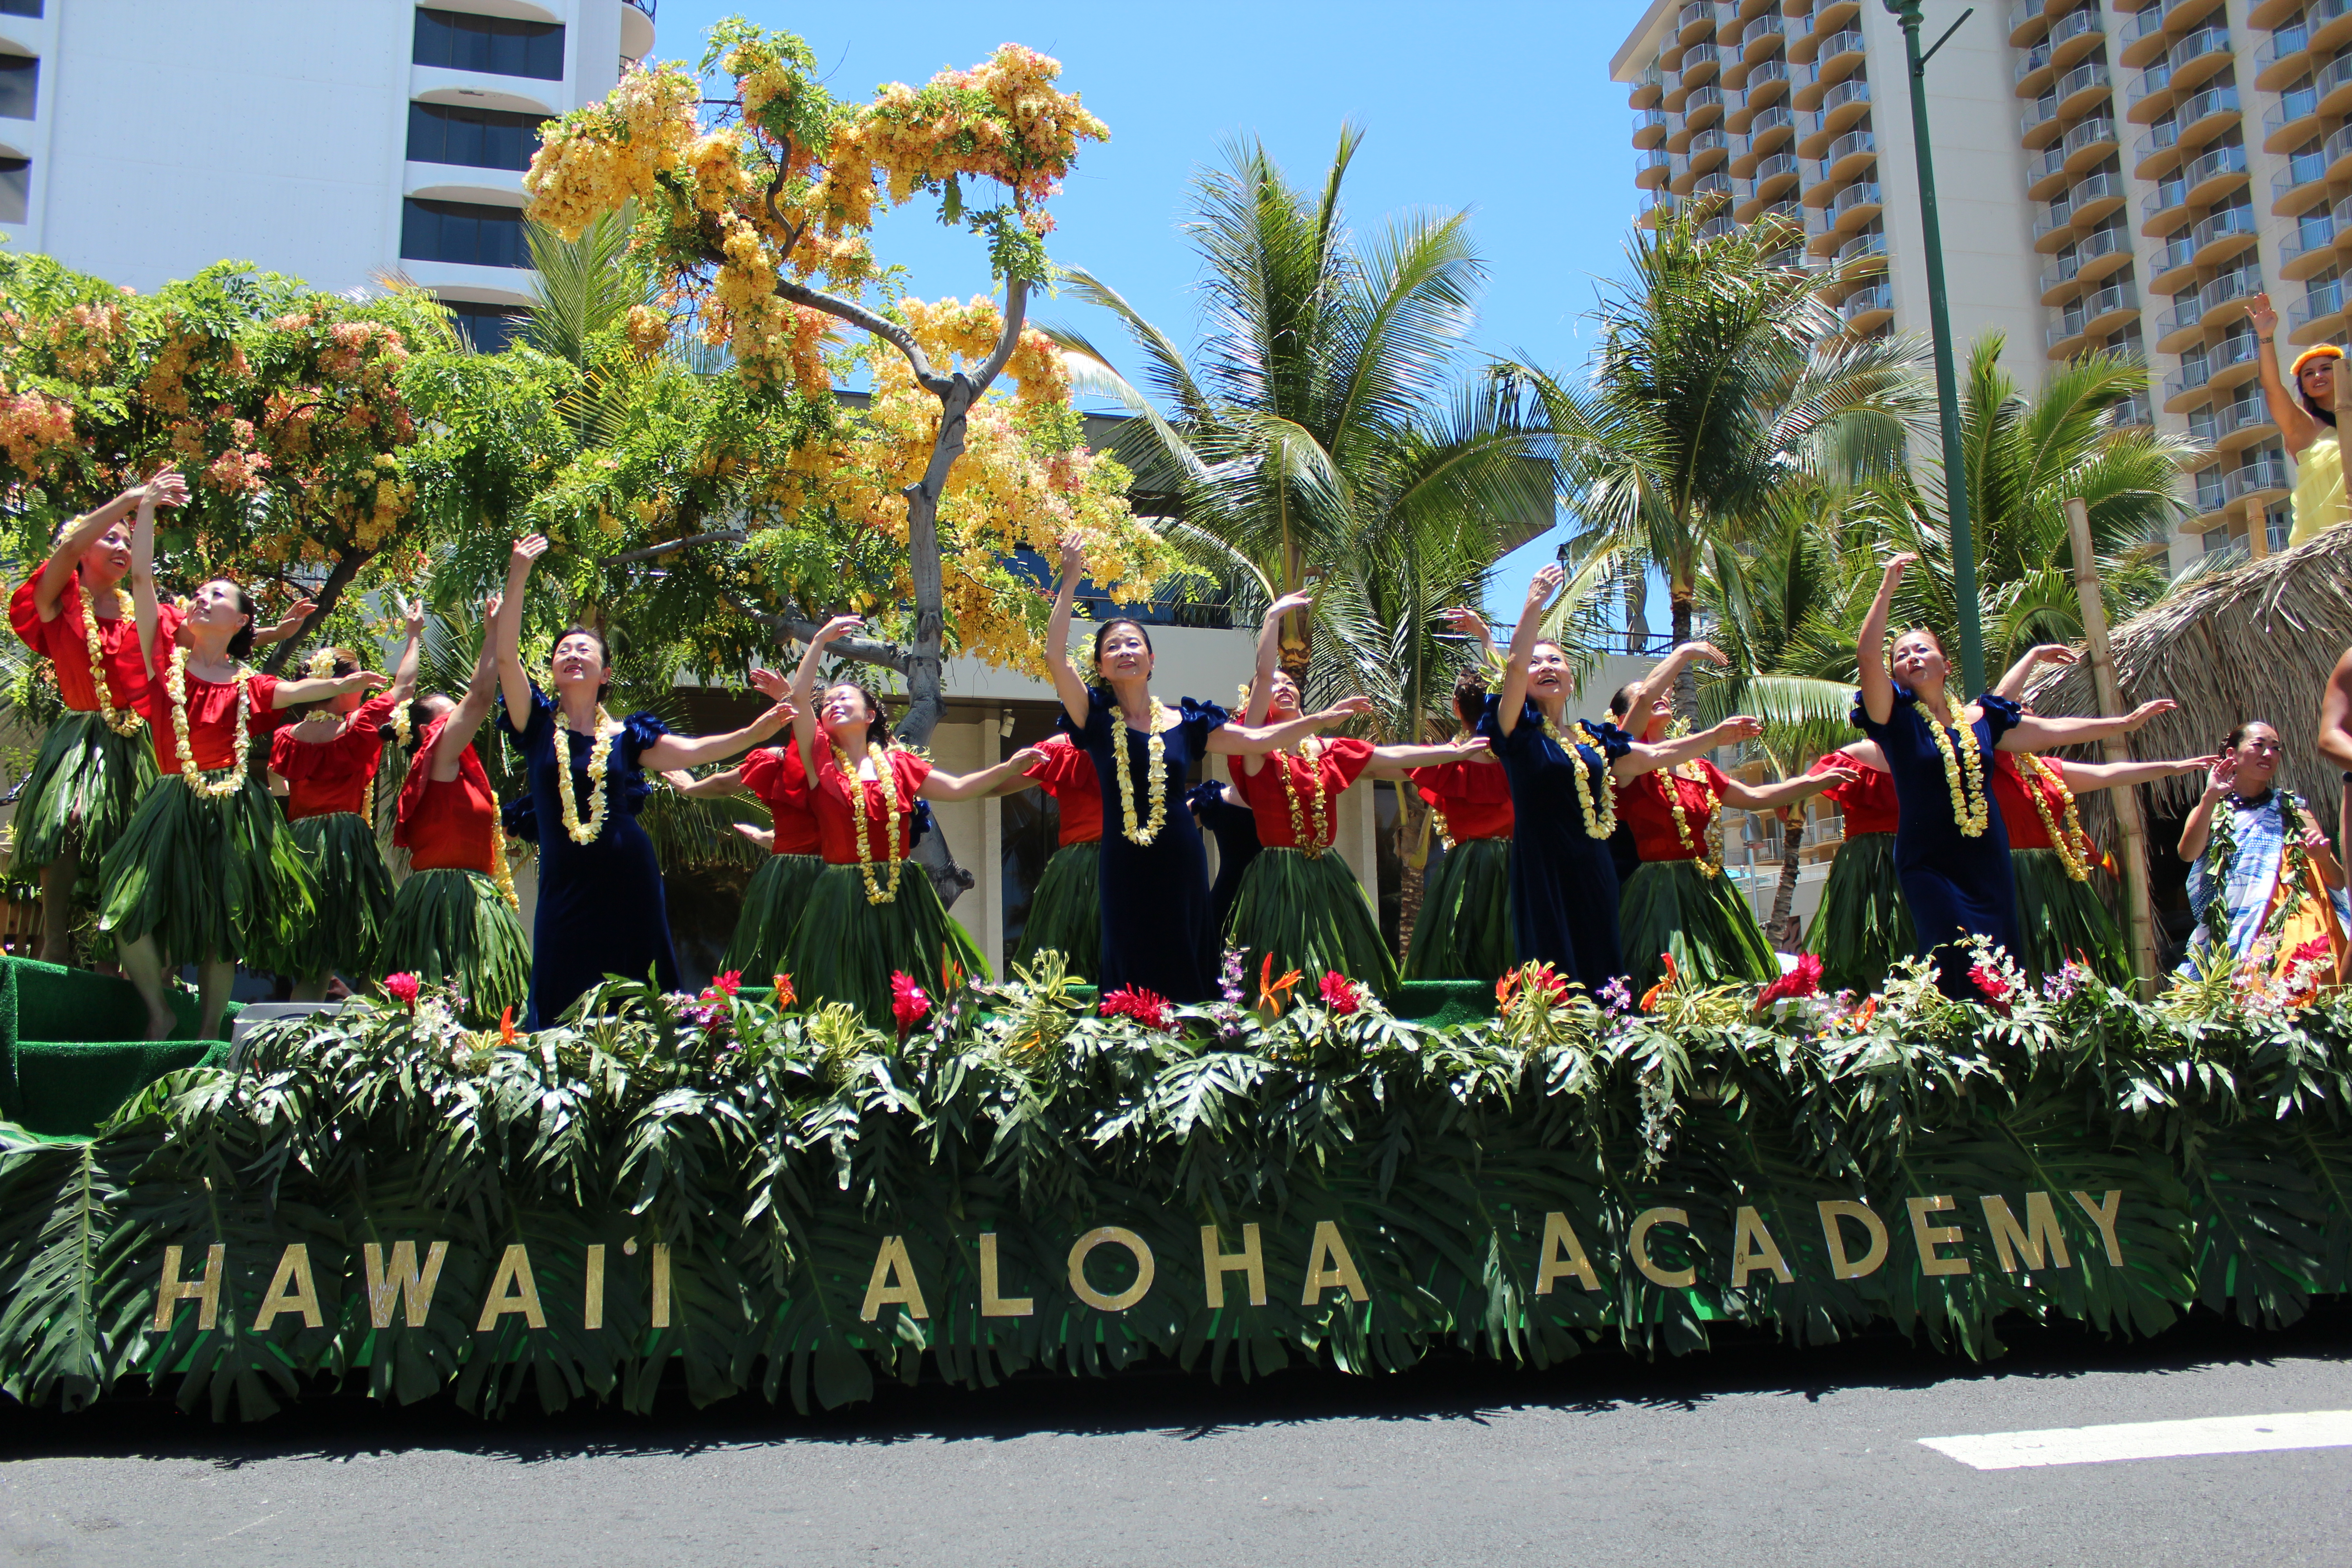 Parade i Waikiki, Hawaii